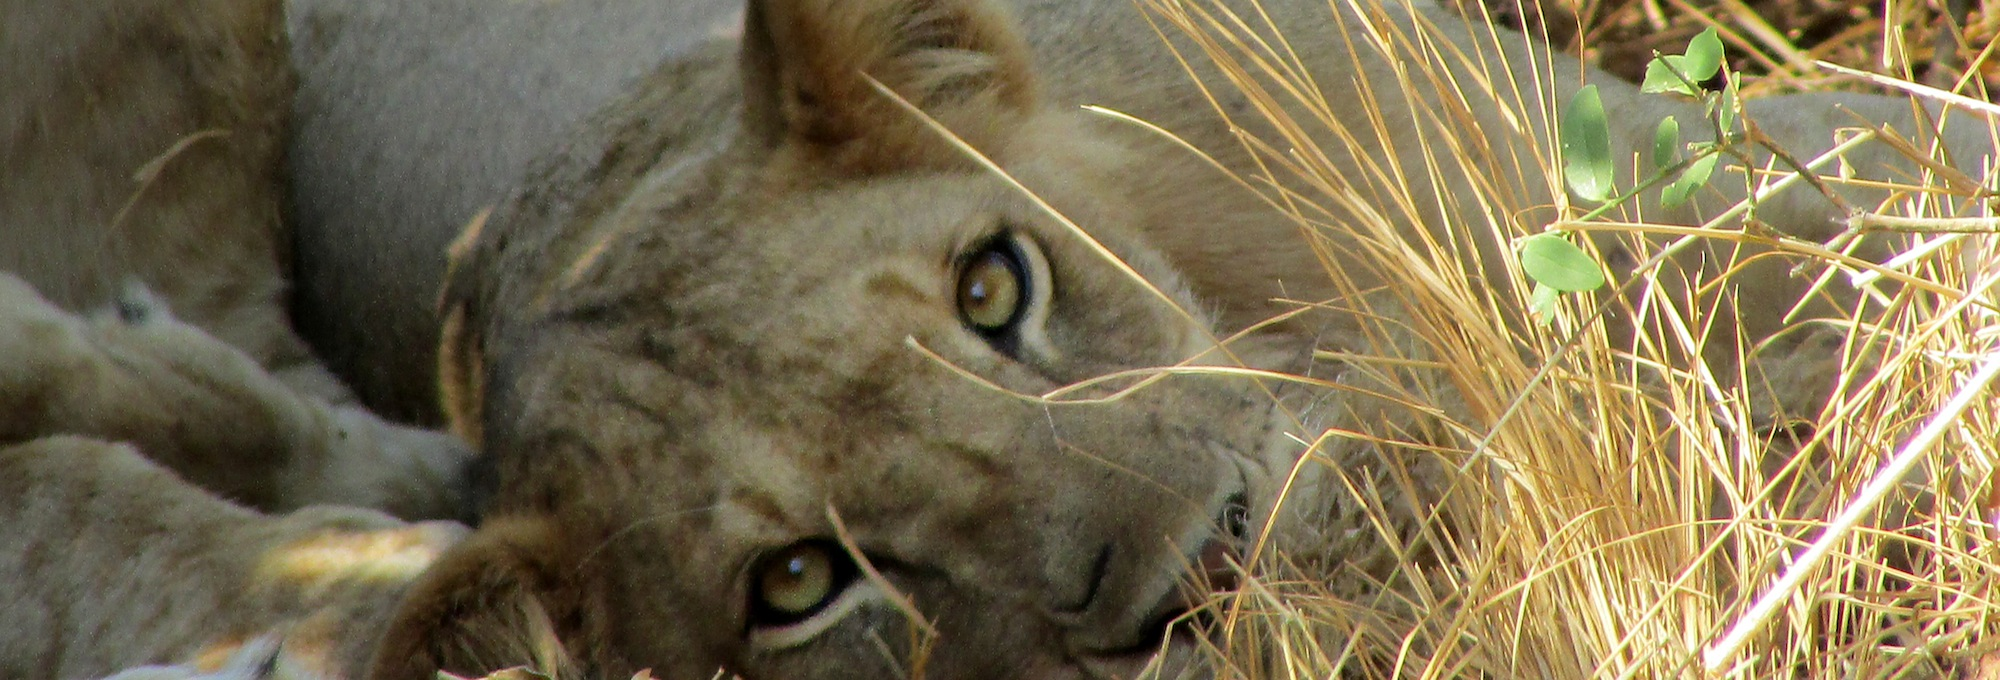 The moment when a lioness in the African savannah sticks his penetrating gaze on yours...